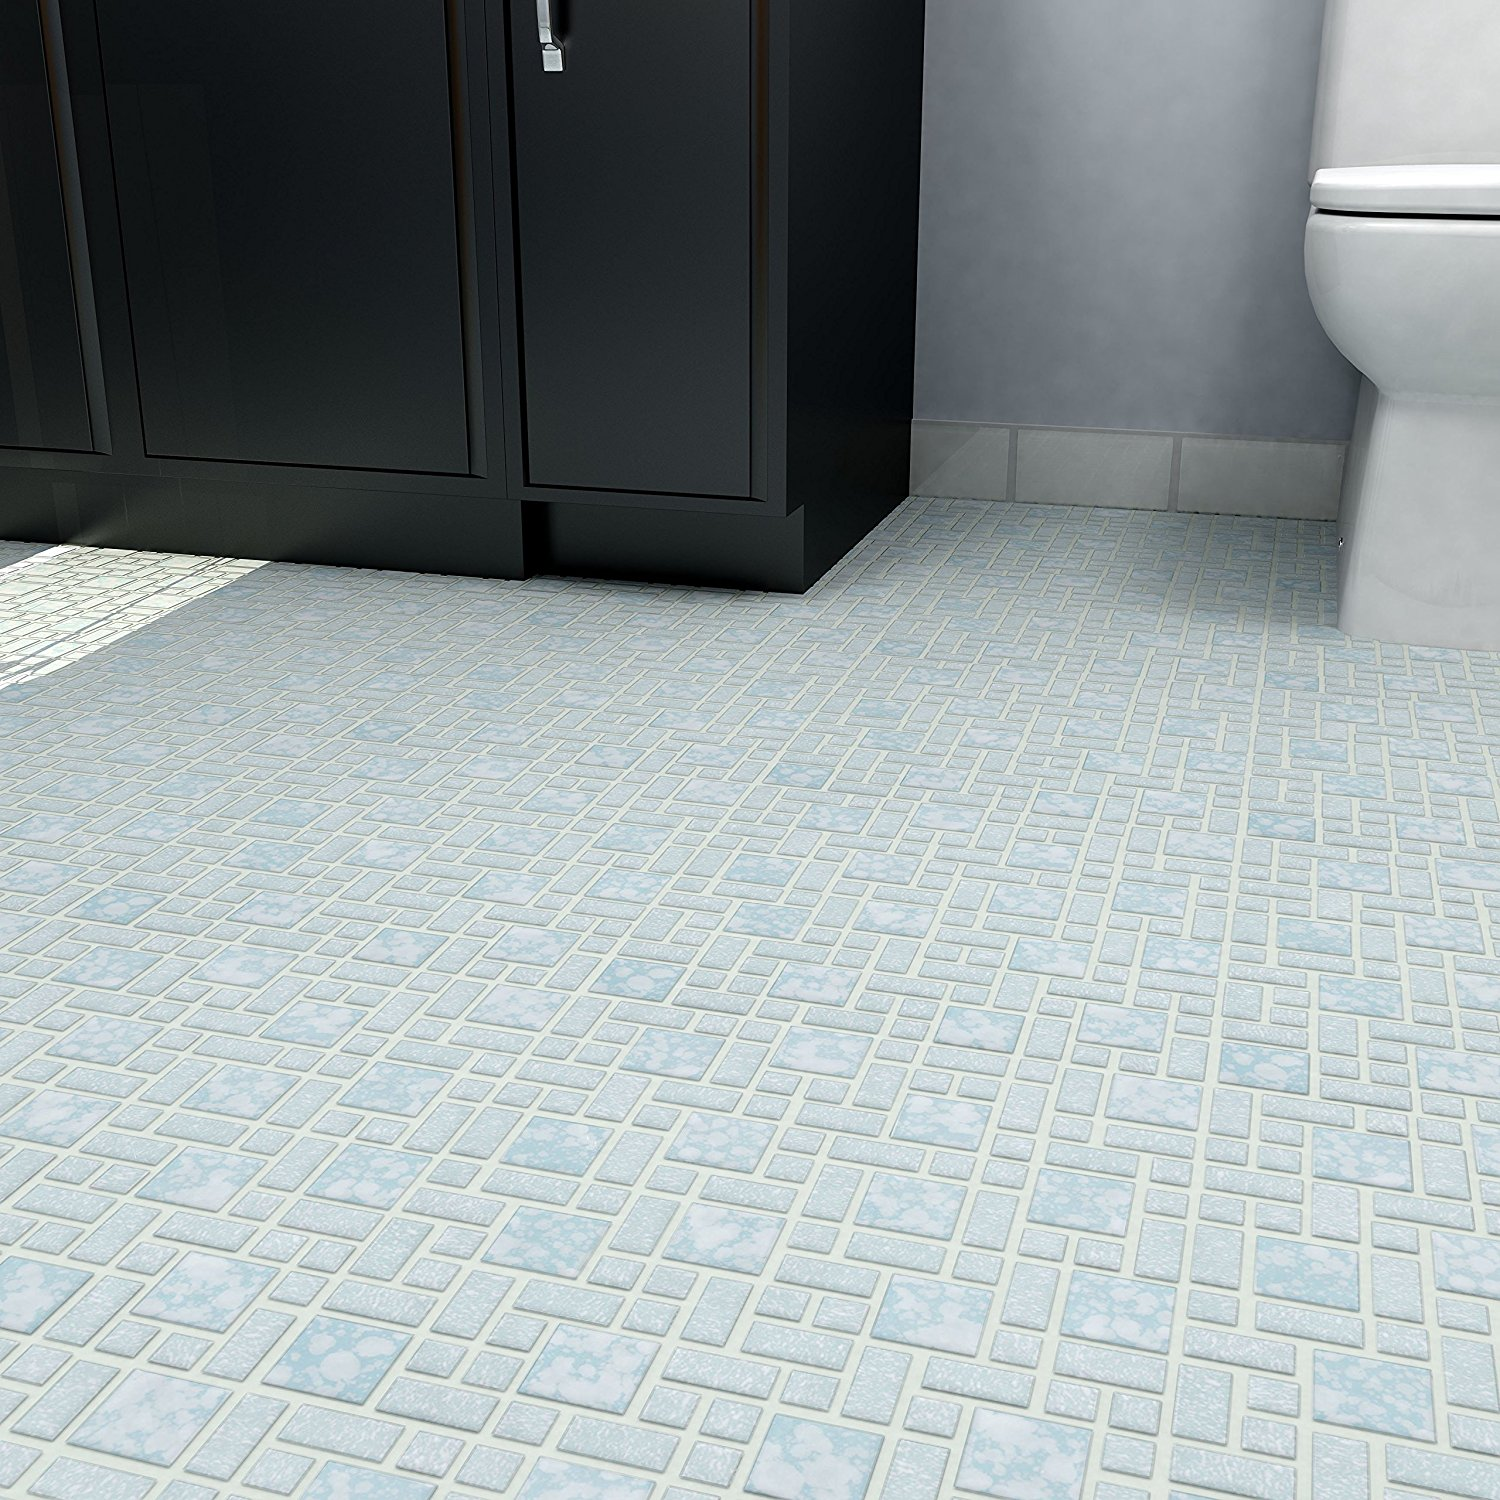 Tiles by color the tile home guide the top 5 floor tile colors for your home dailygadgetfo Image collections